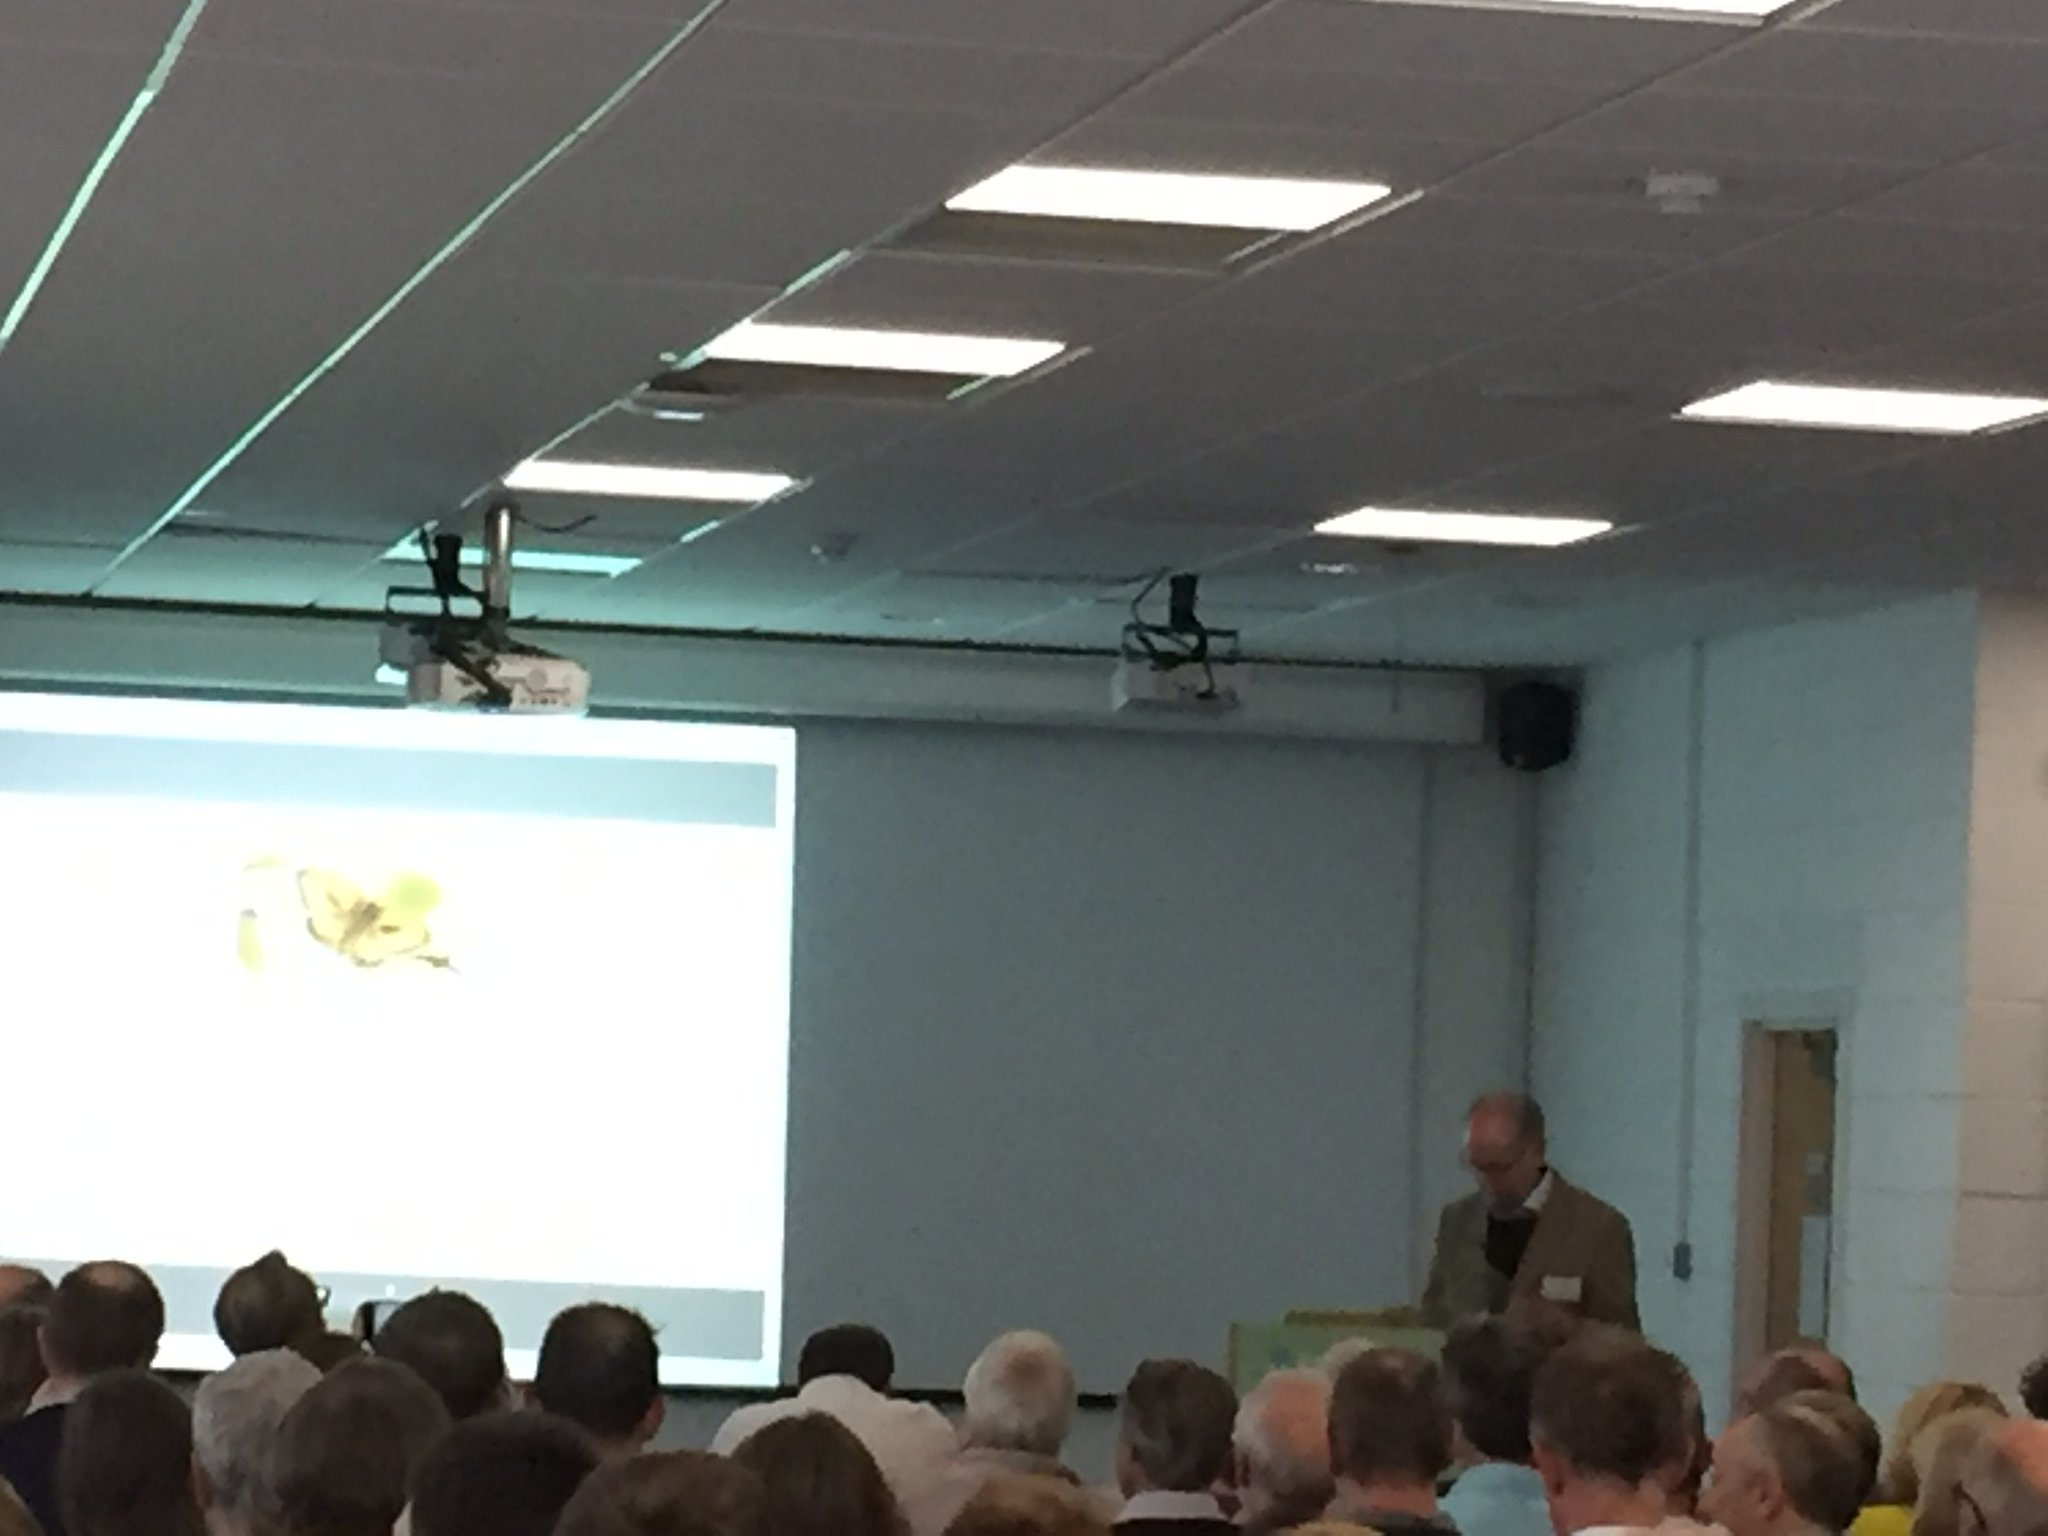 Such a privilege to hear the inspiring Ernie Pollard about the first steps in butterfly transfer walking @CEHScienceNews https://t.co/ARsr2lhl1o